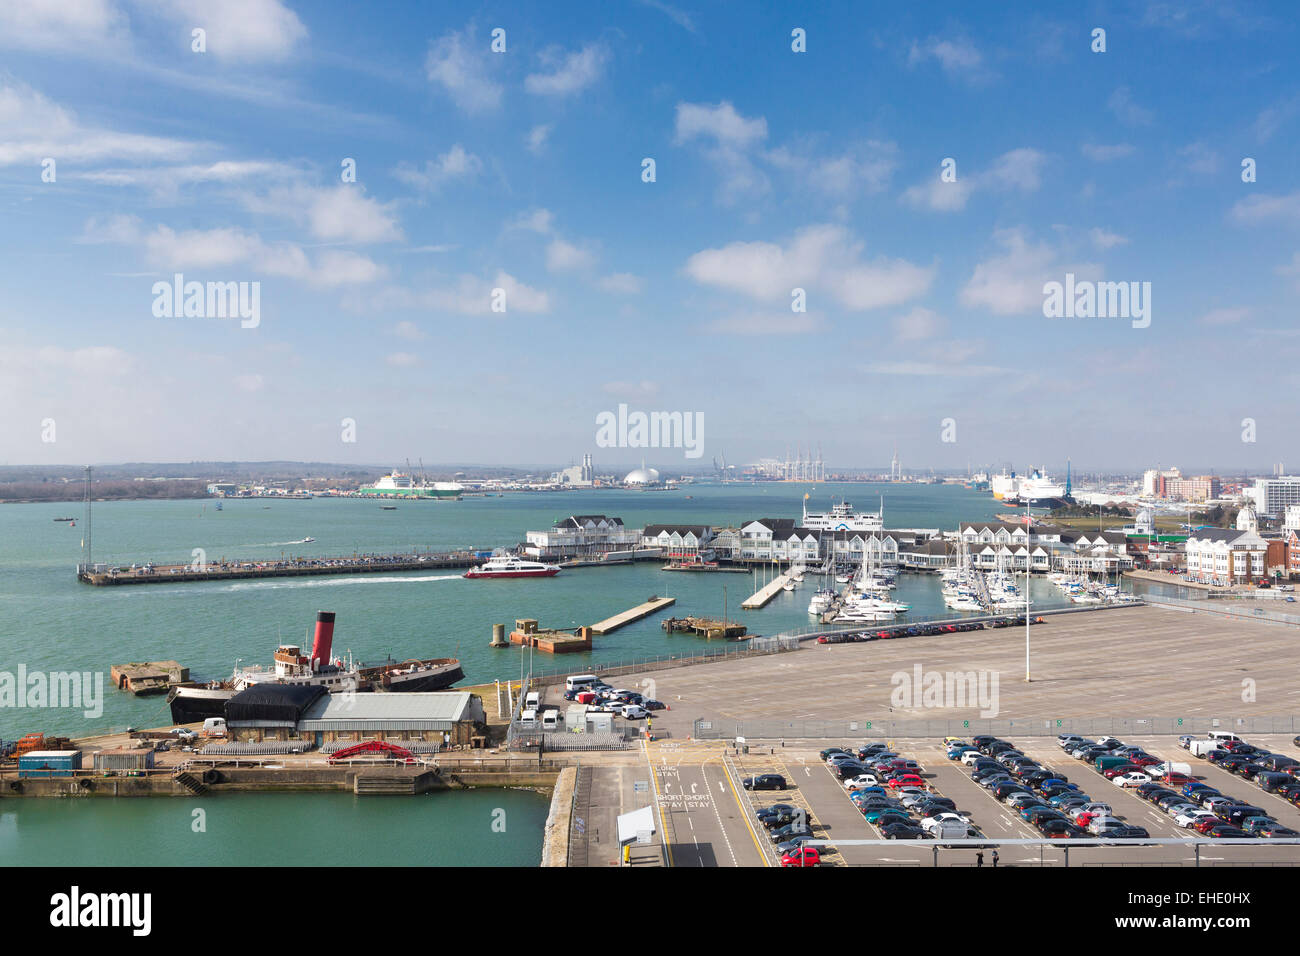 Town Quay in Southampton looking west from the Eastern Docks. Picture date: Saturday March 7, 2015. Photograph by - Stock Image